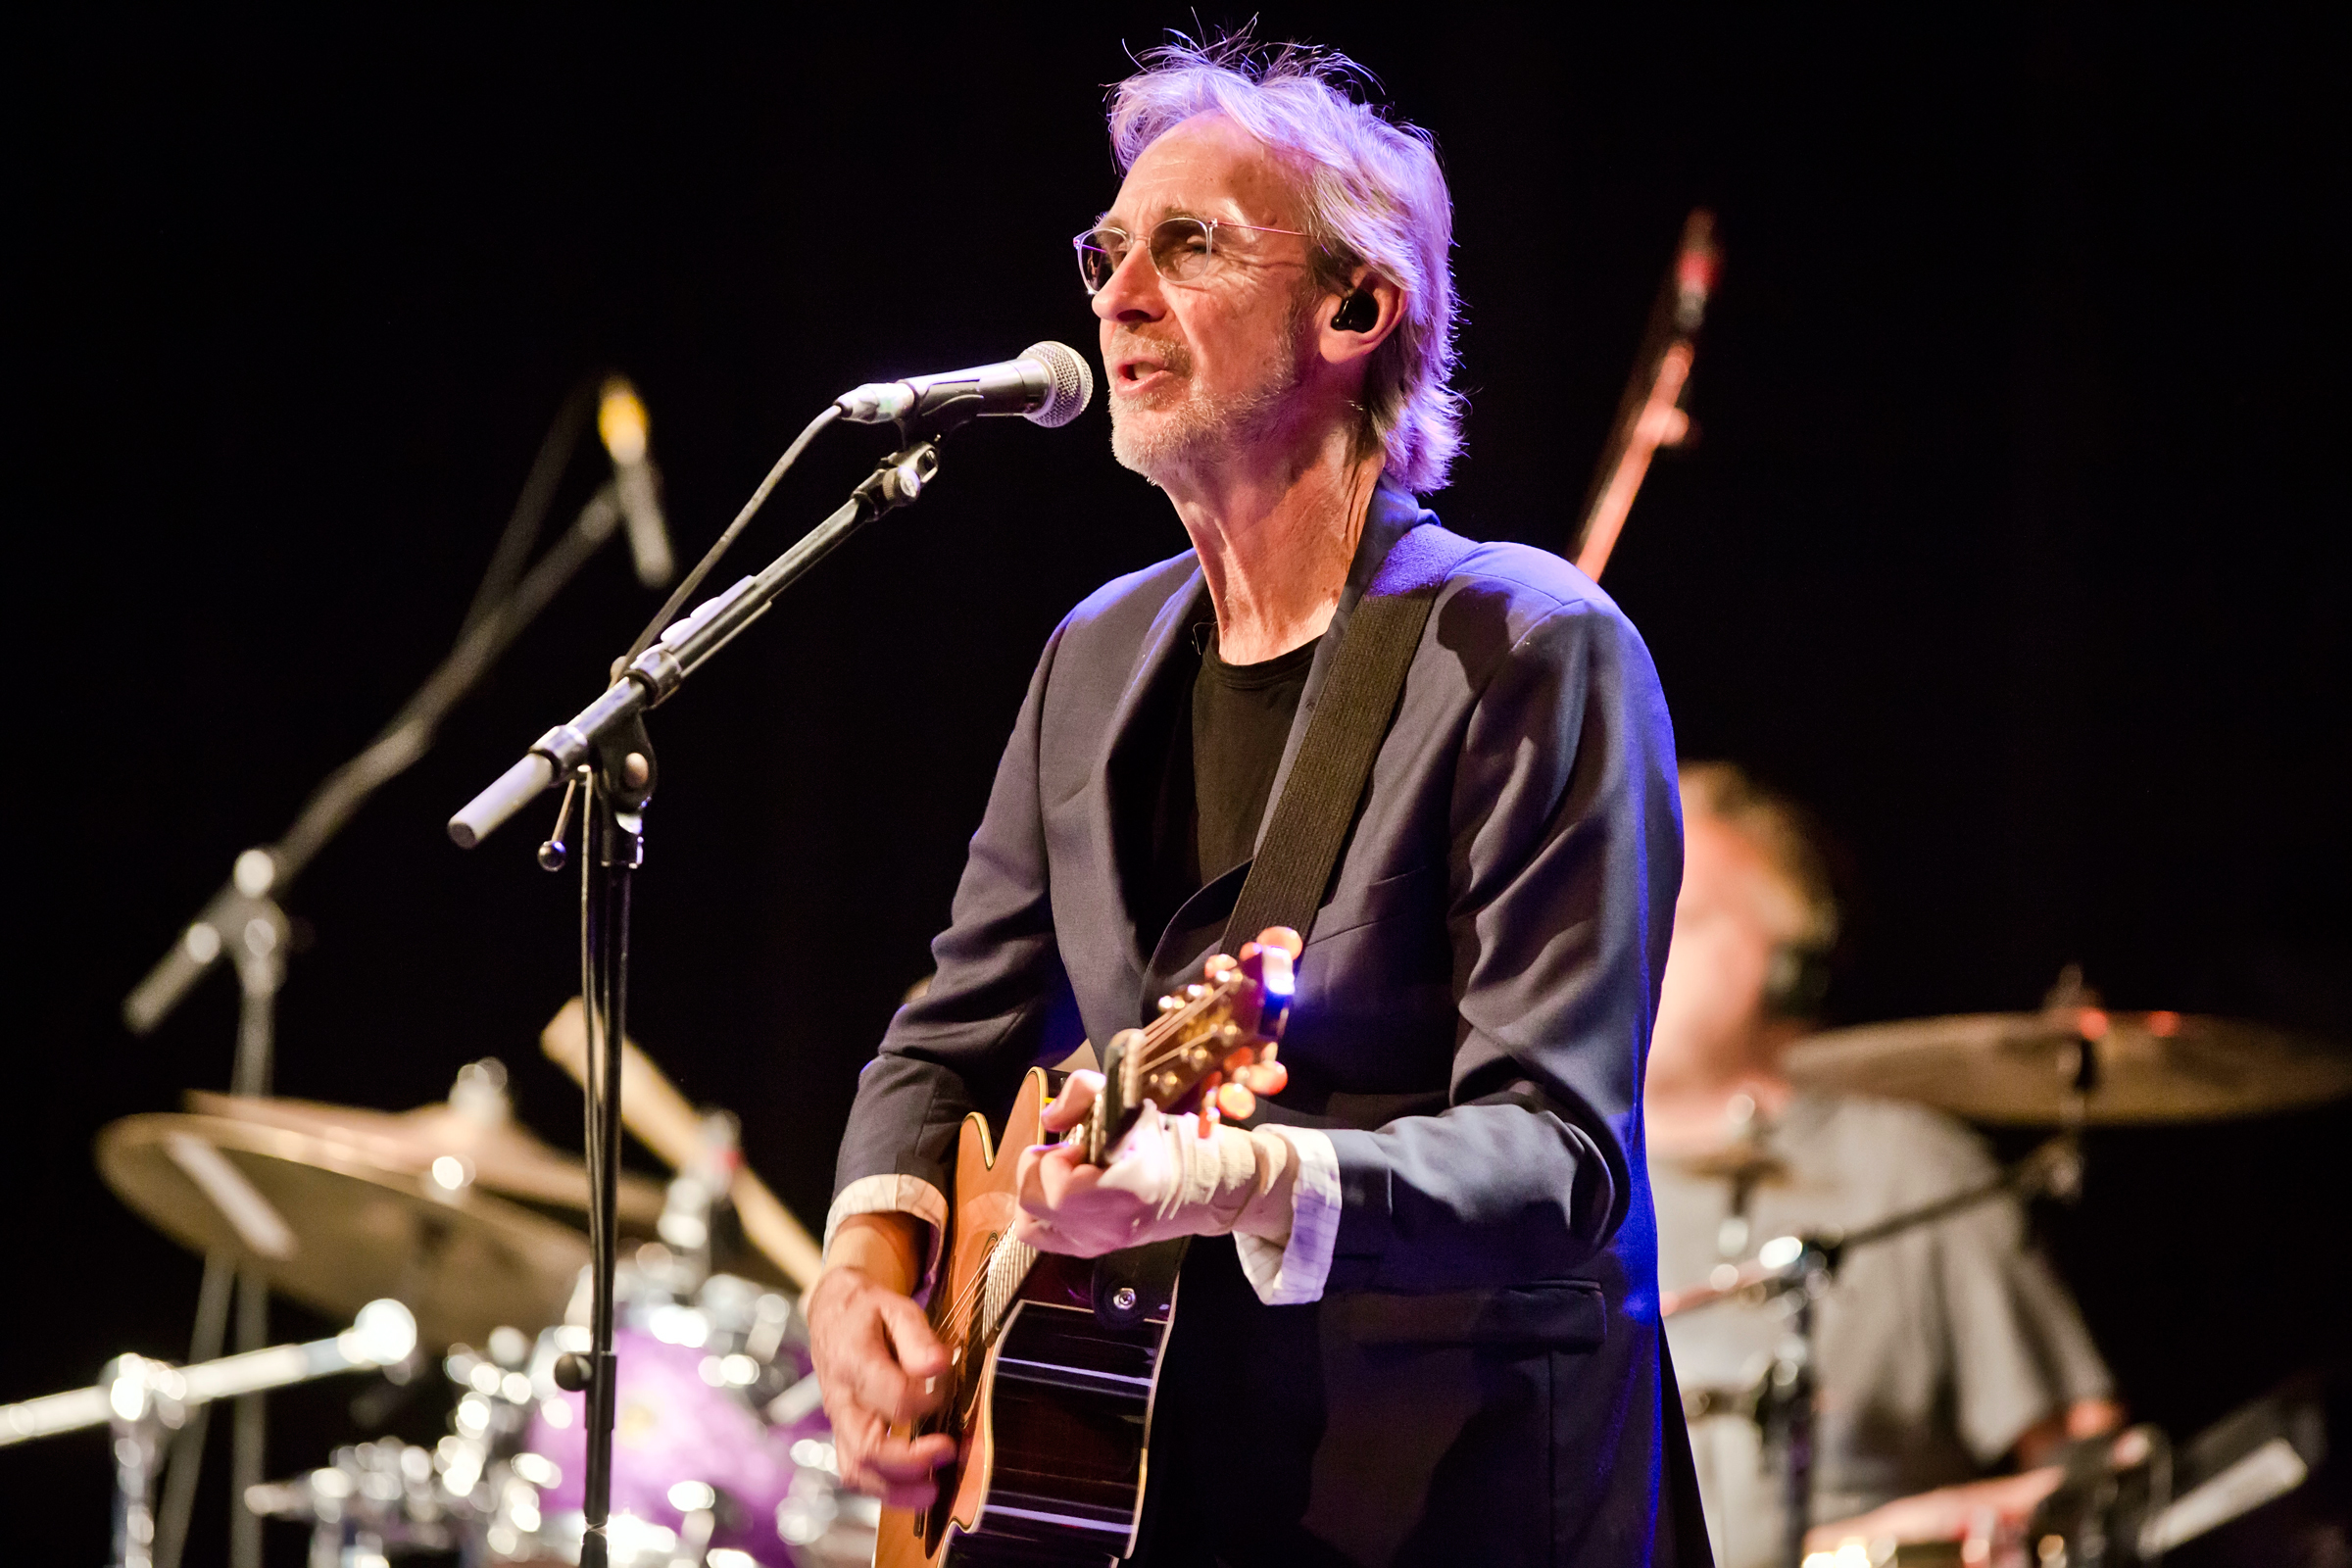 Mike Rutherford on Reviving The Mechanics and the Future of Genesis